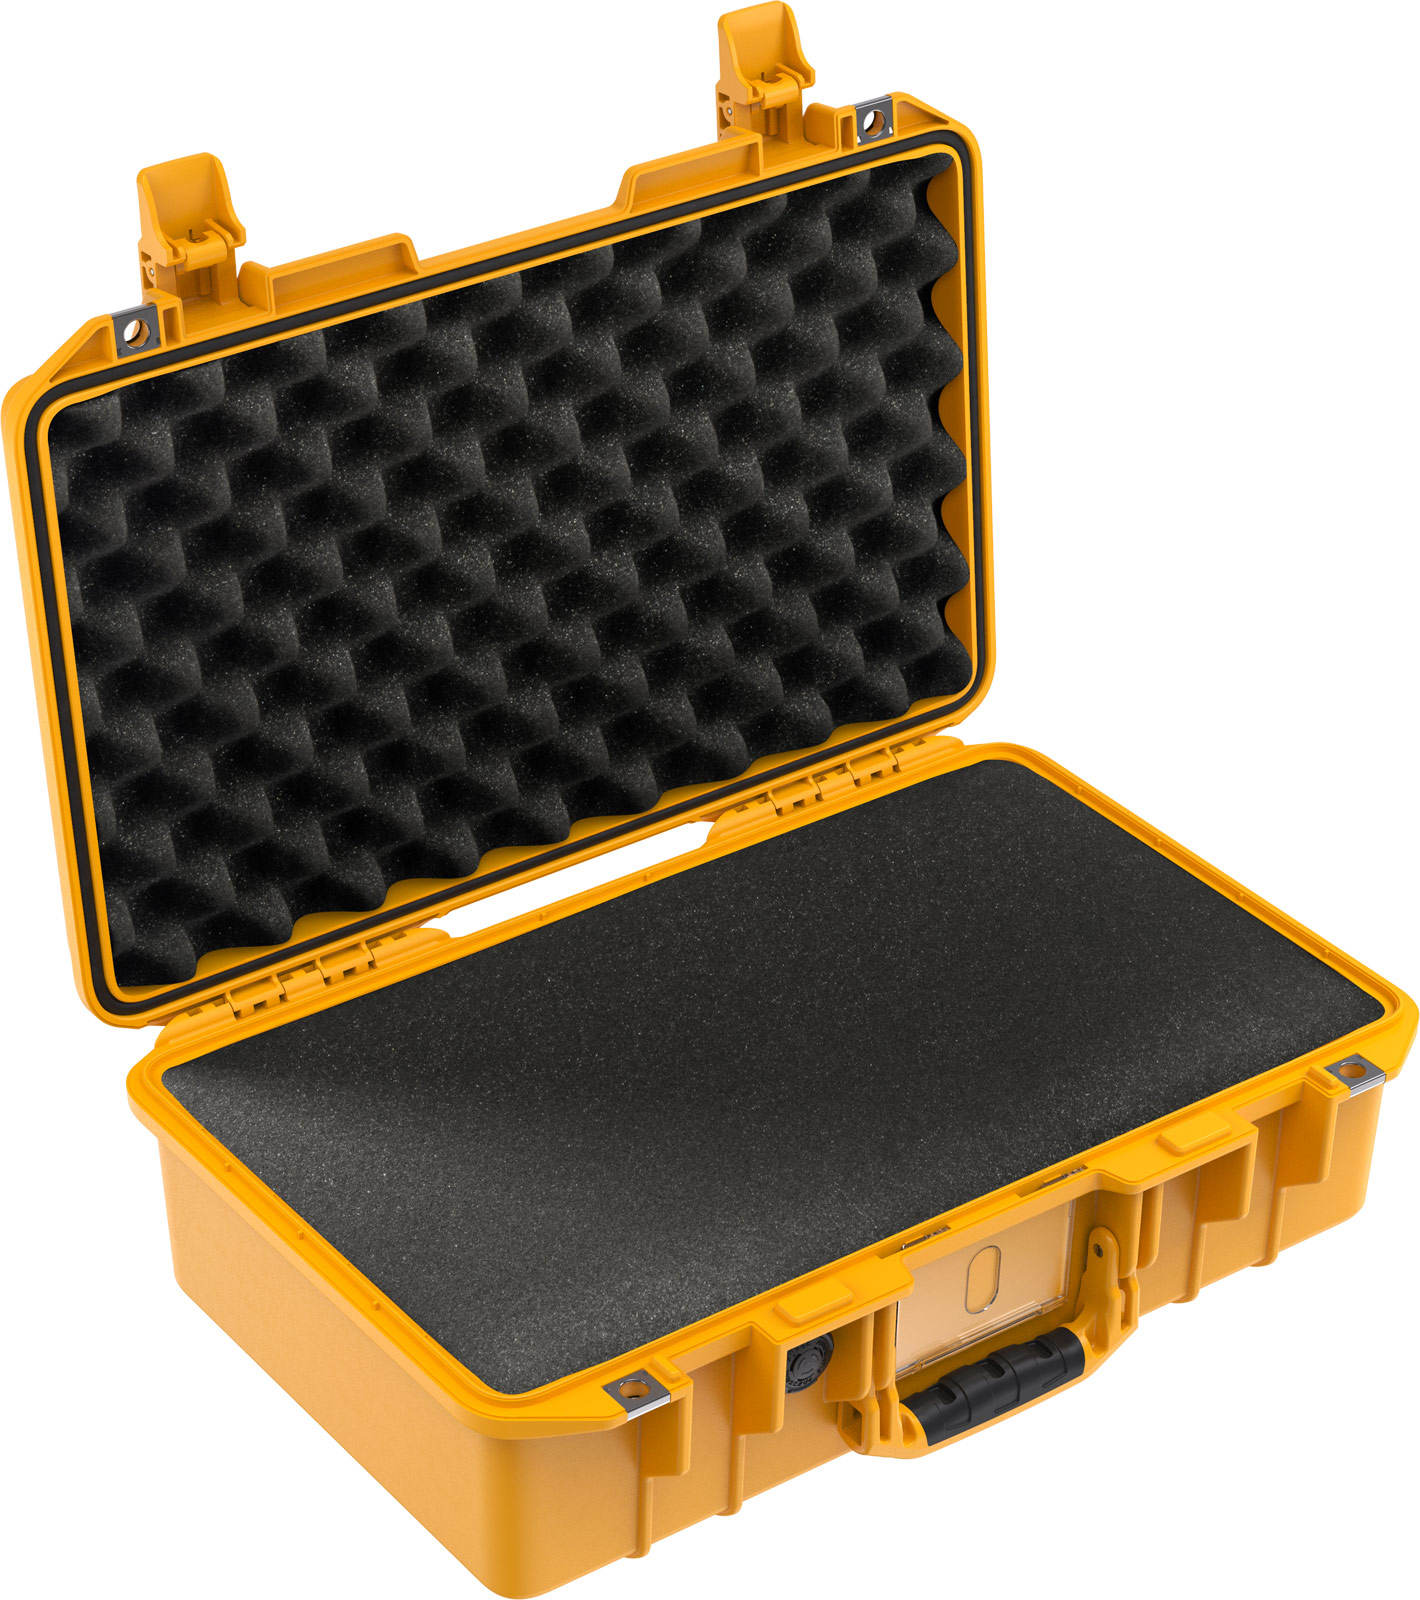 buy pelican air 1485 shop yellow camera foam case